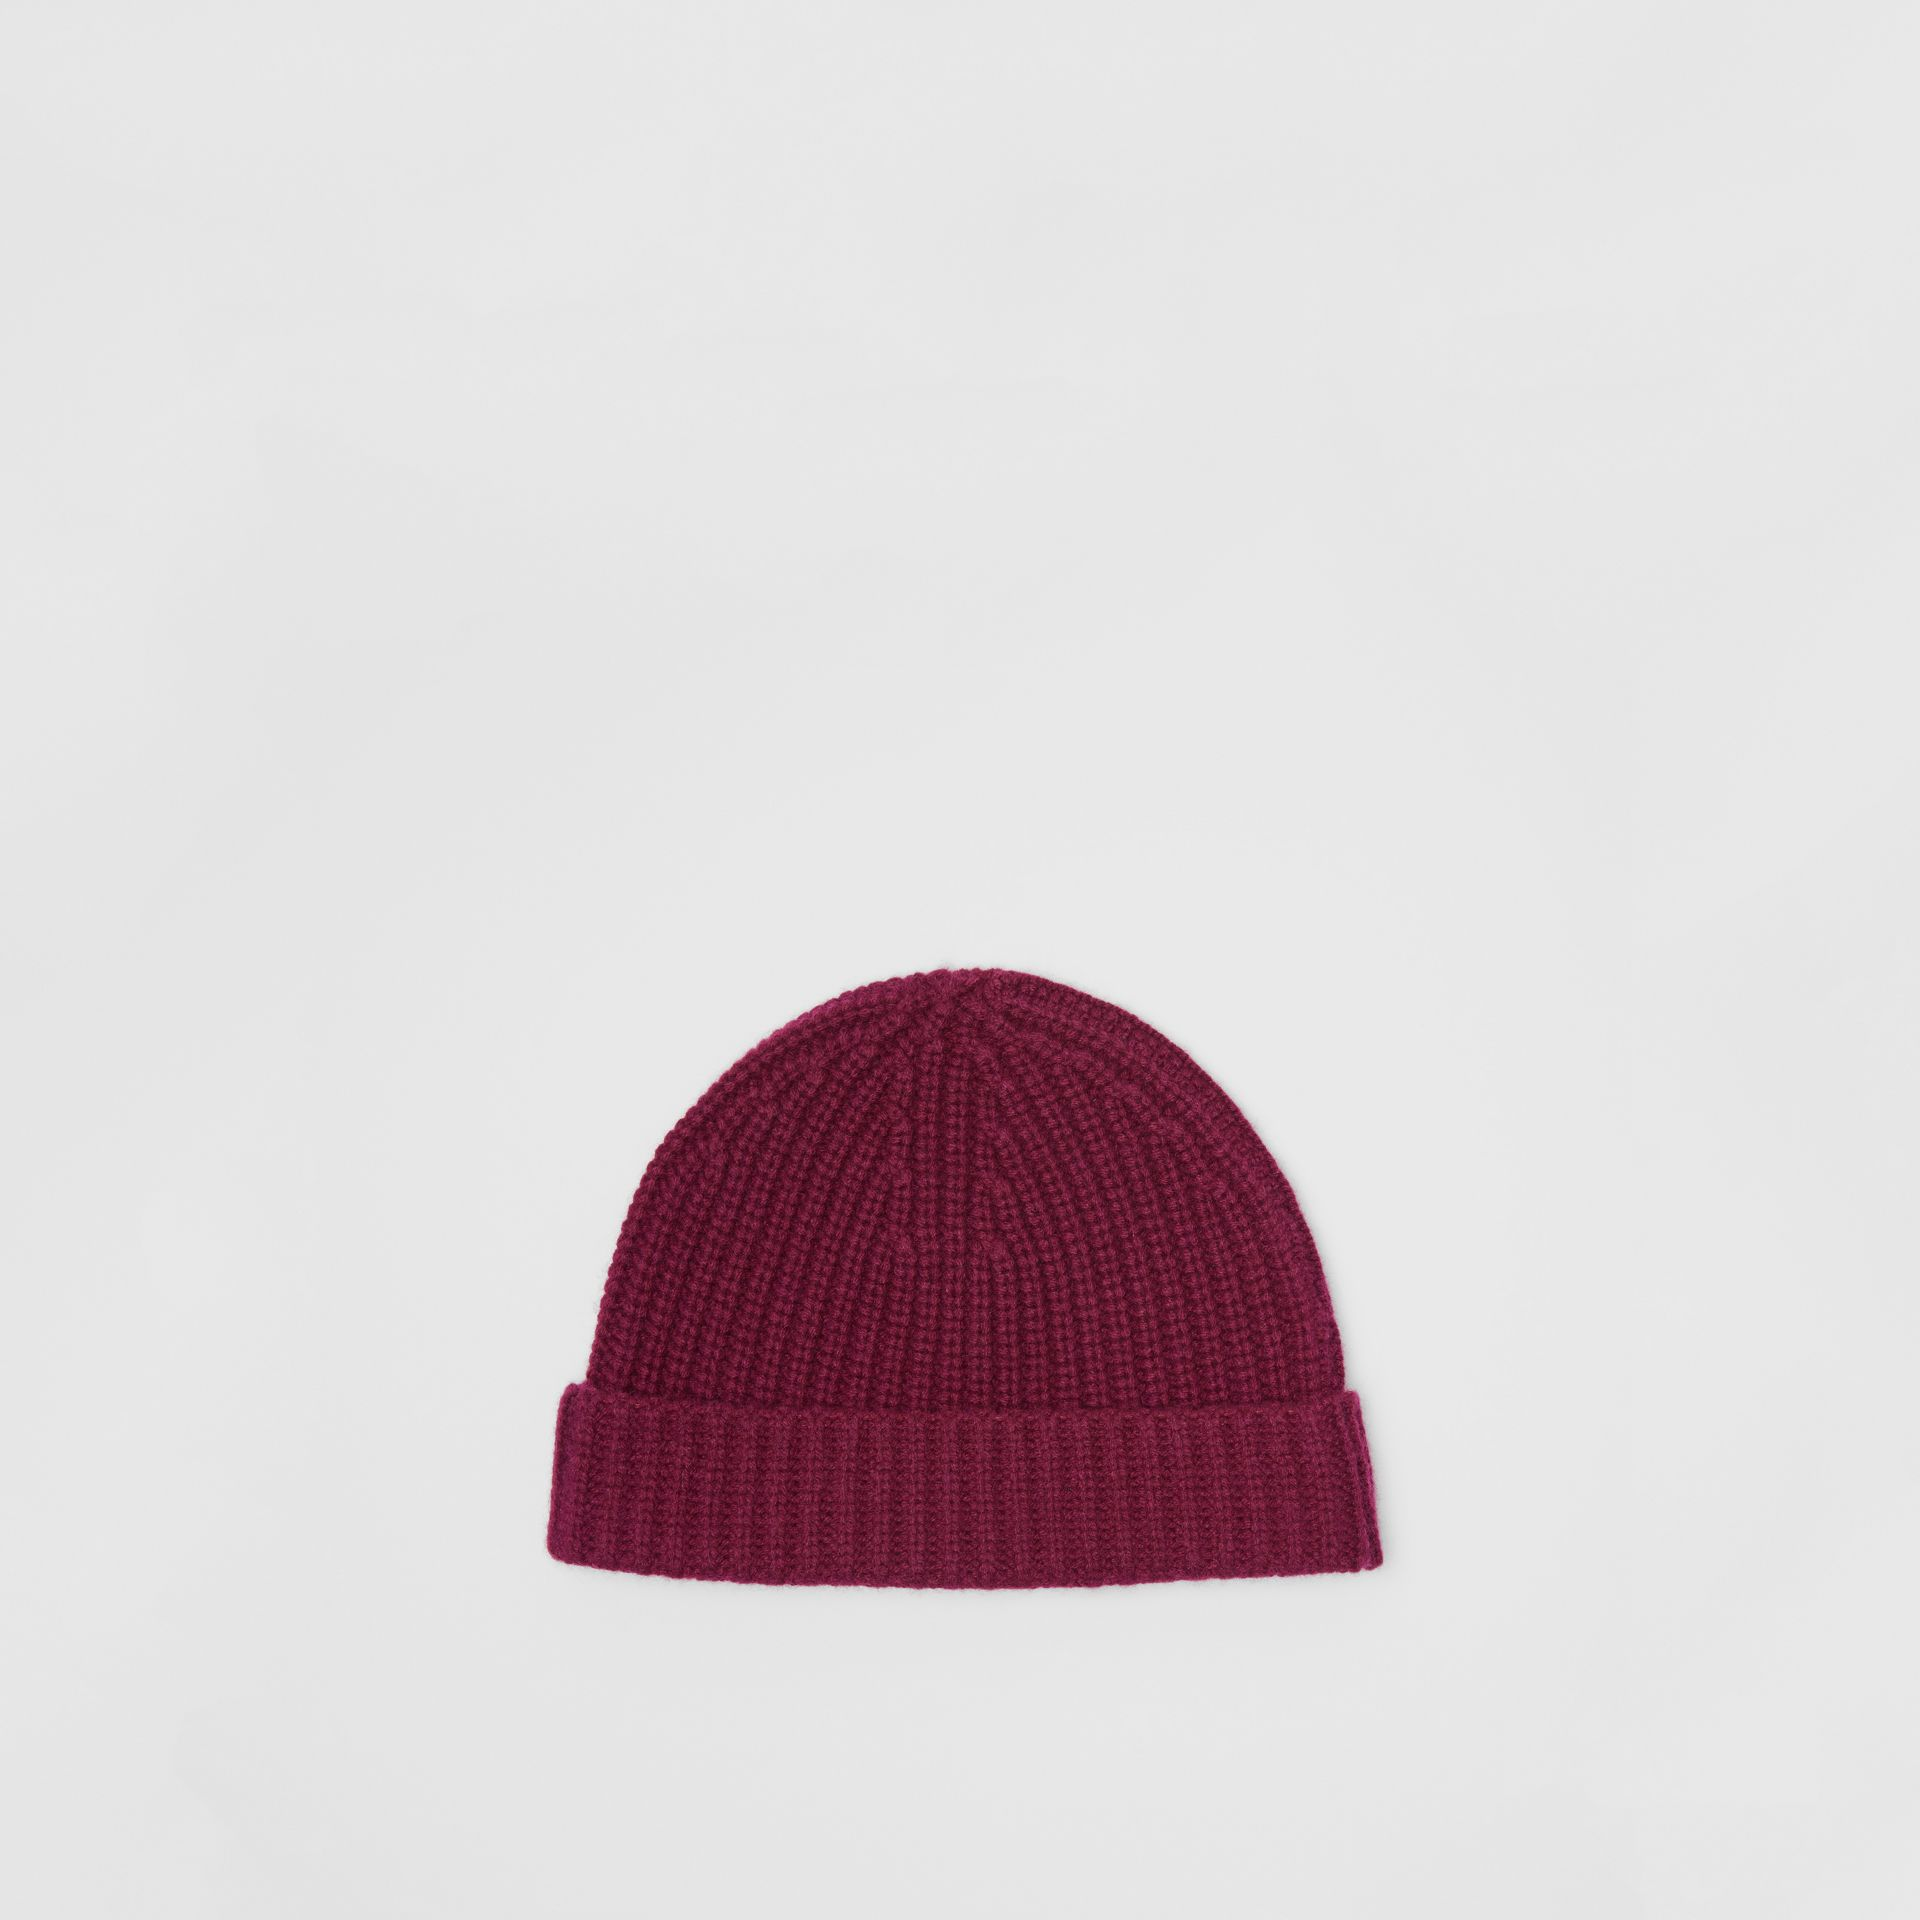 Rib Knit Cashmere Beanie in Dark Elderberry | Burberry - gallery image 3